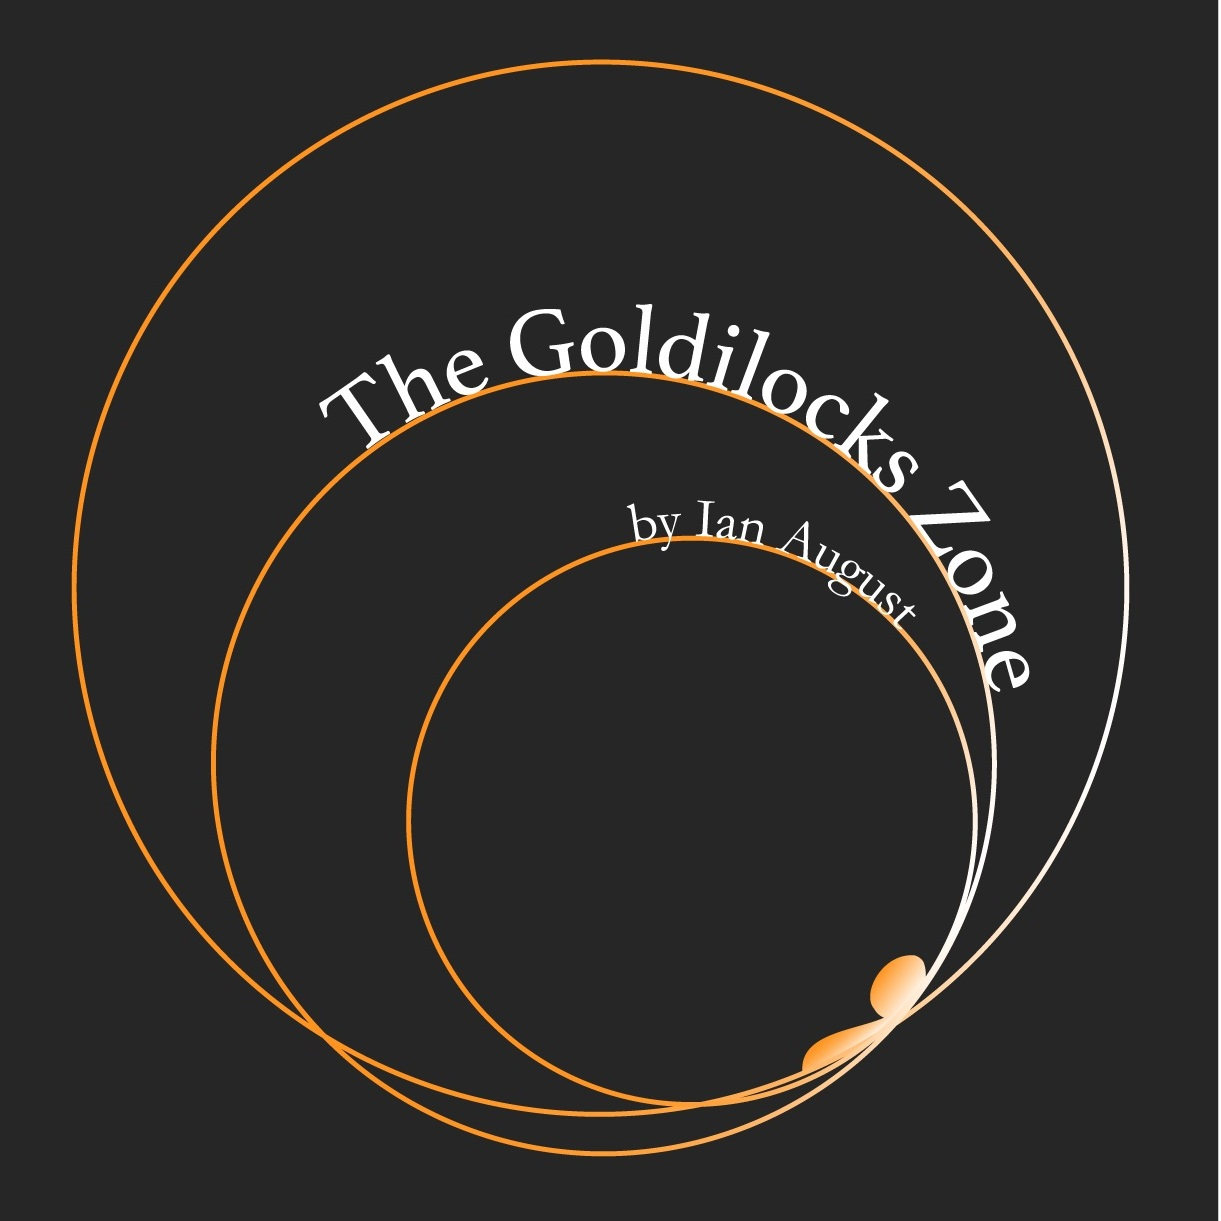 Image designed by Melissa Flower for the Wordsmyth Productions reading of The Goldilocks Zone.